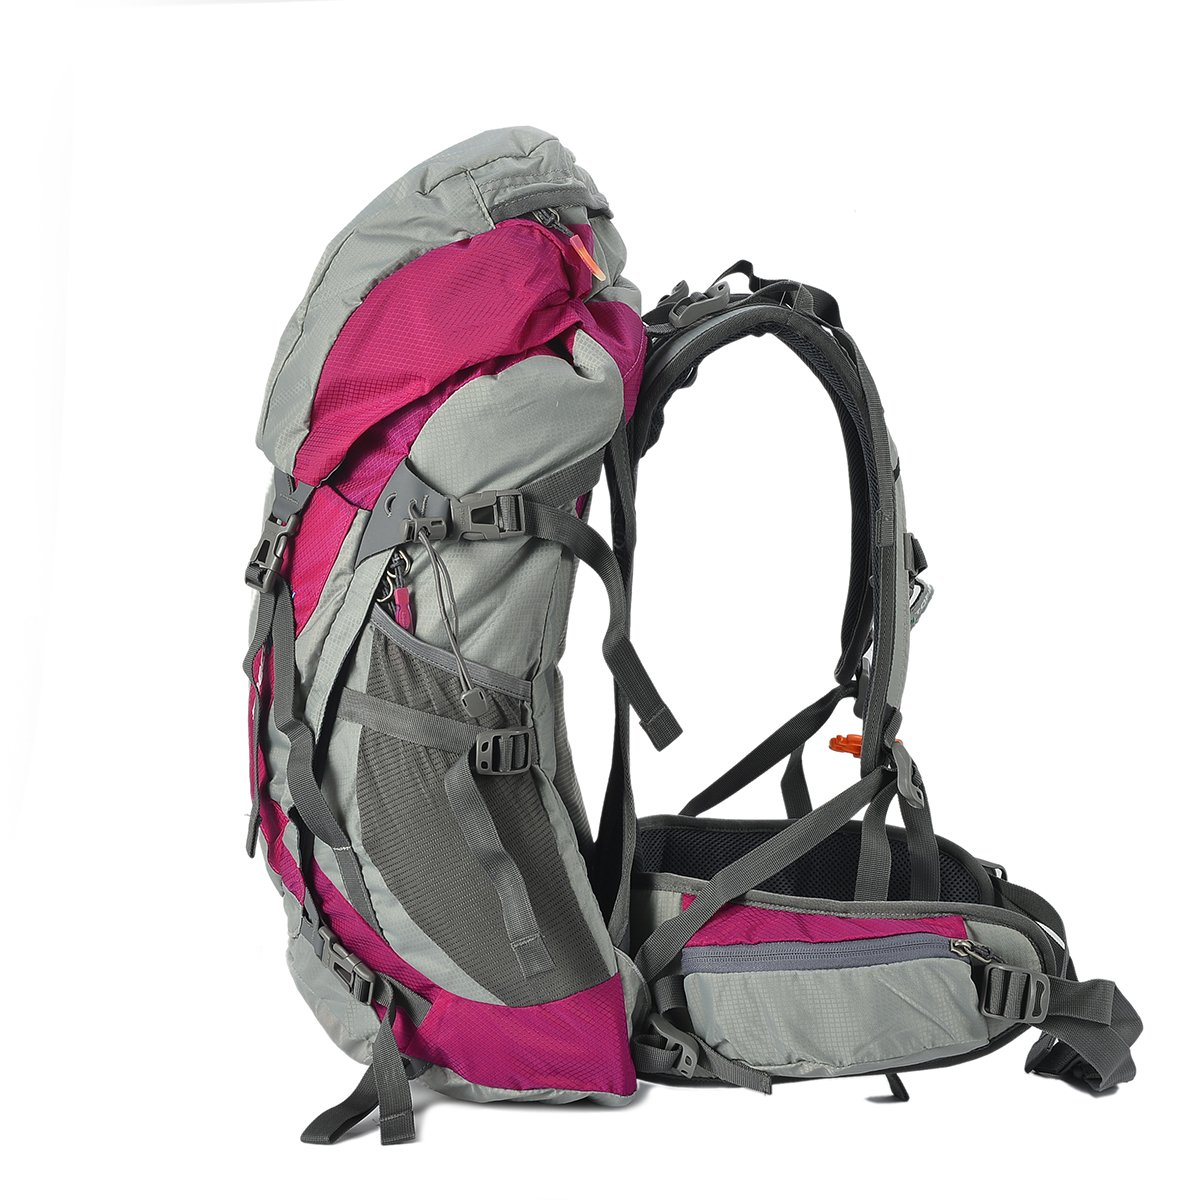 Tofine External Frame Backpack Backpackers Survival Gear Bag for 72 Hour 3 Day with Rain Cover Hot Pink 32L